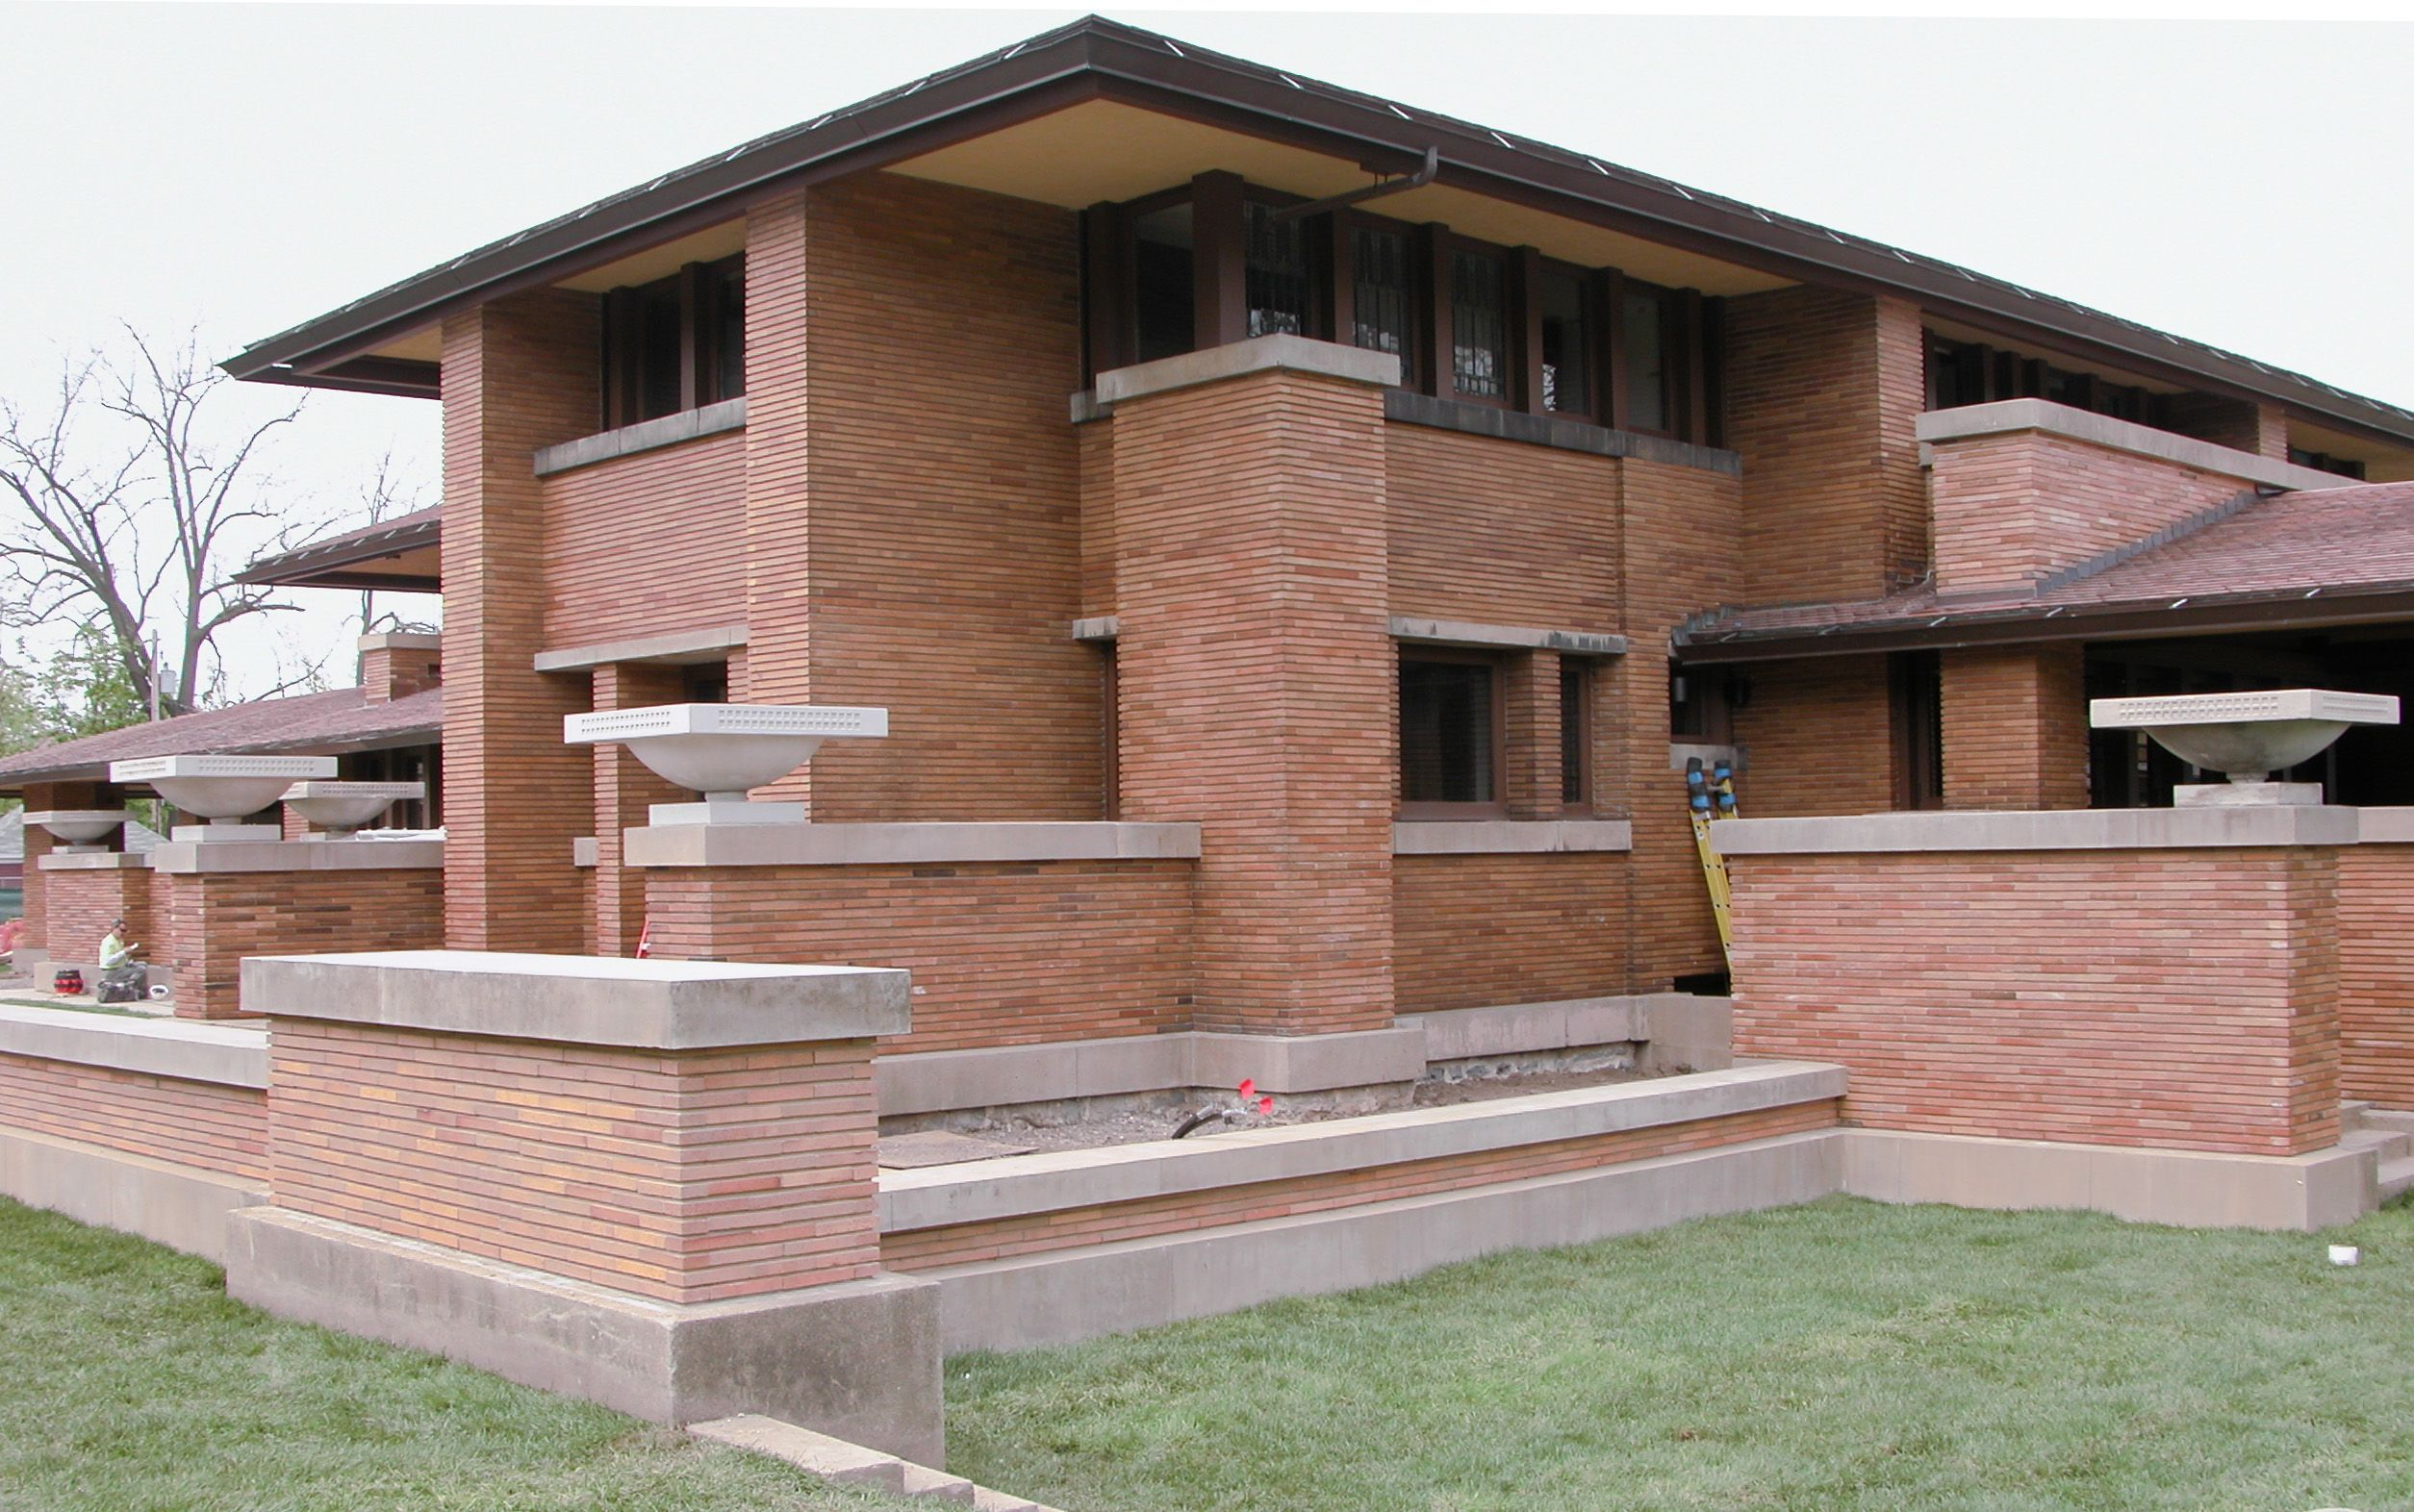 Forgotten House Frank Lloyd Wright Architecture Lab Mesmerizing View From The Southeast Showing Restored Masonry Exterior 6489 12